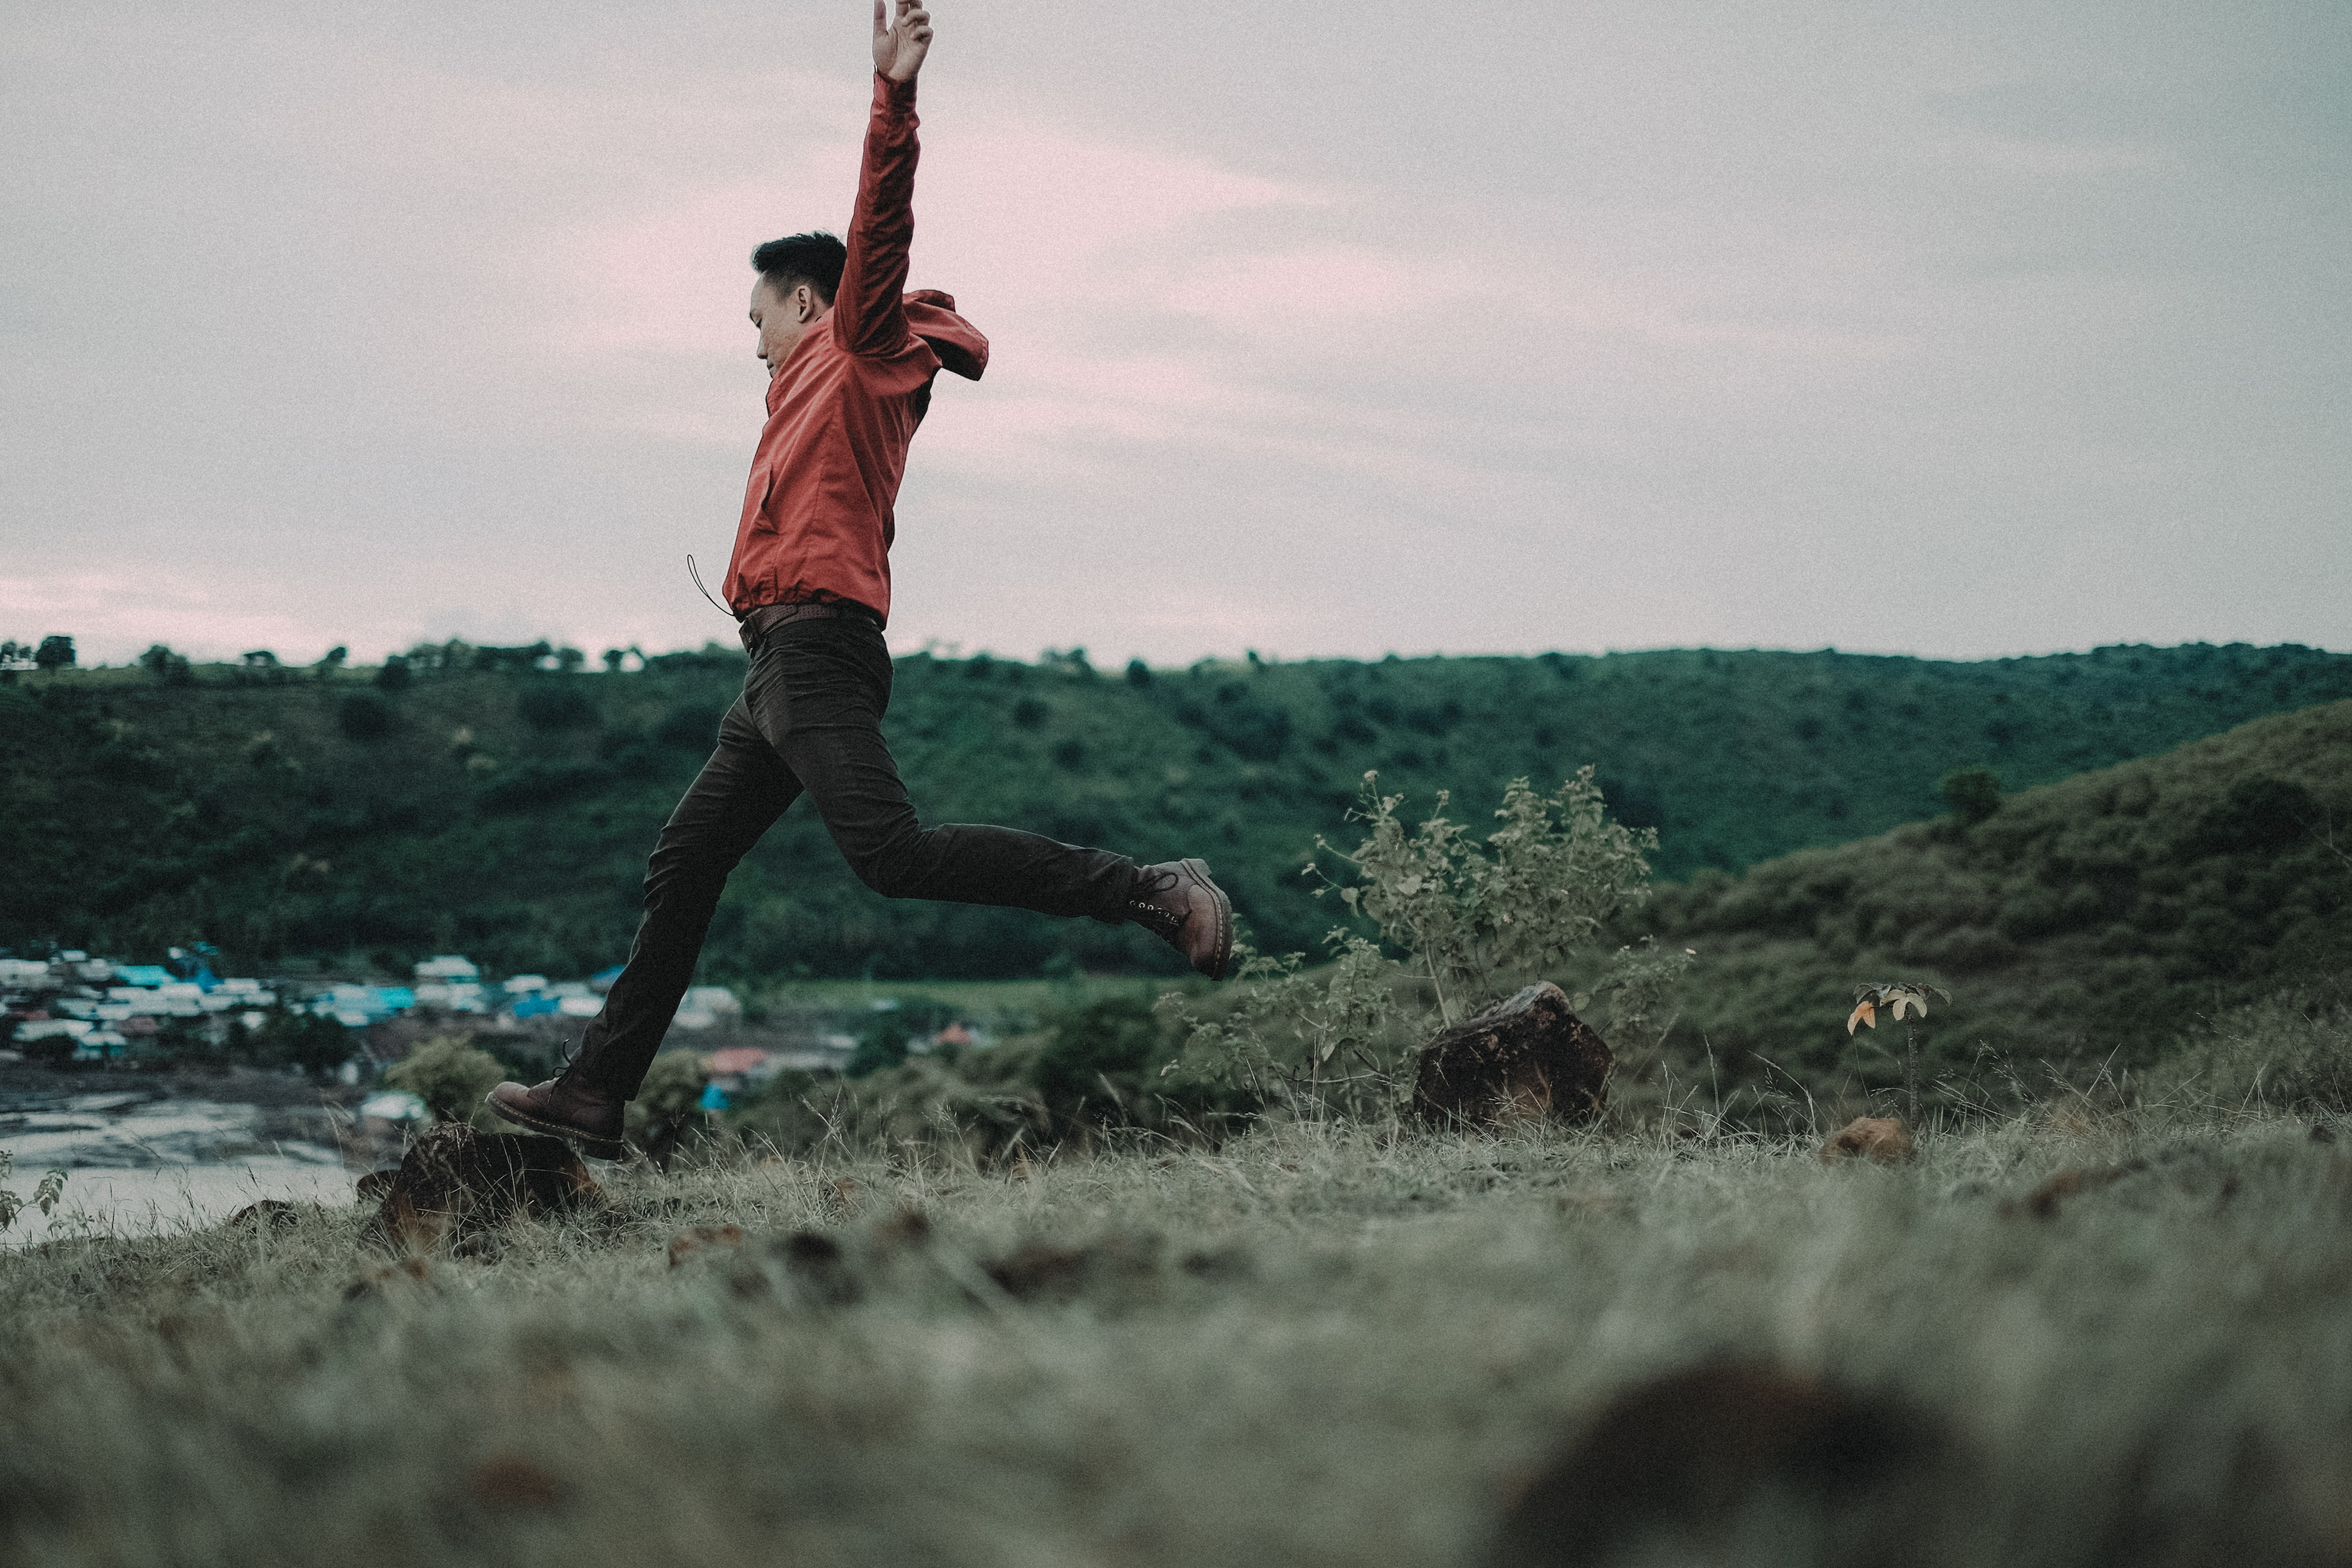 man jumping on green grass at day time